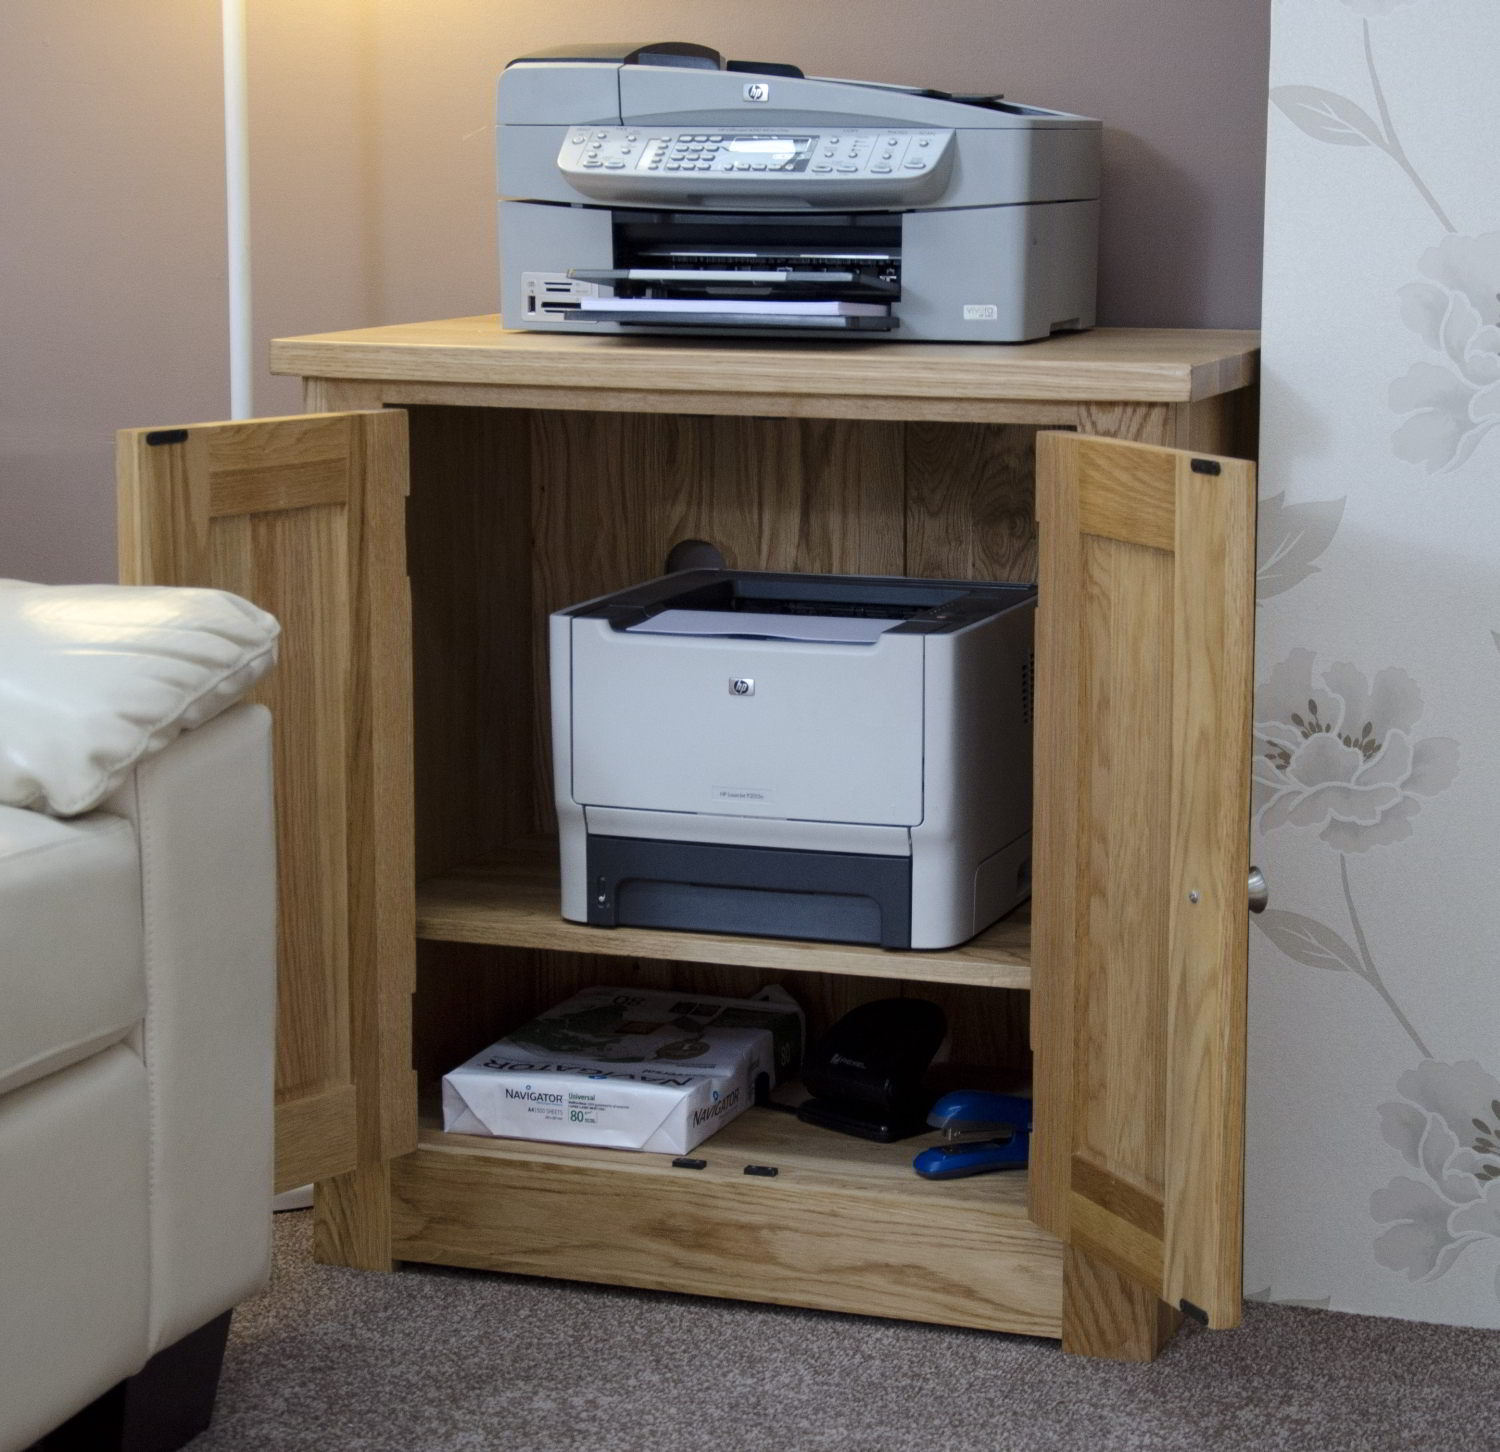 Houseofaura Desks With Printer Storage